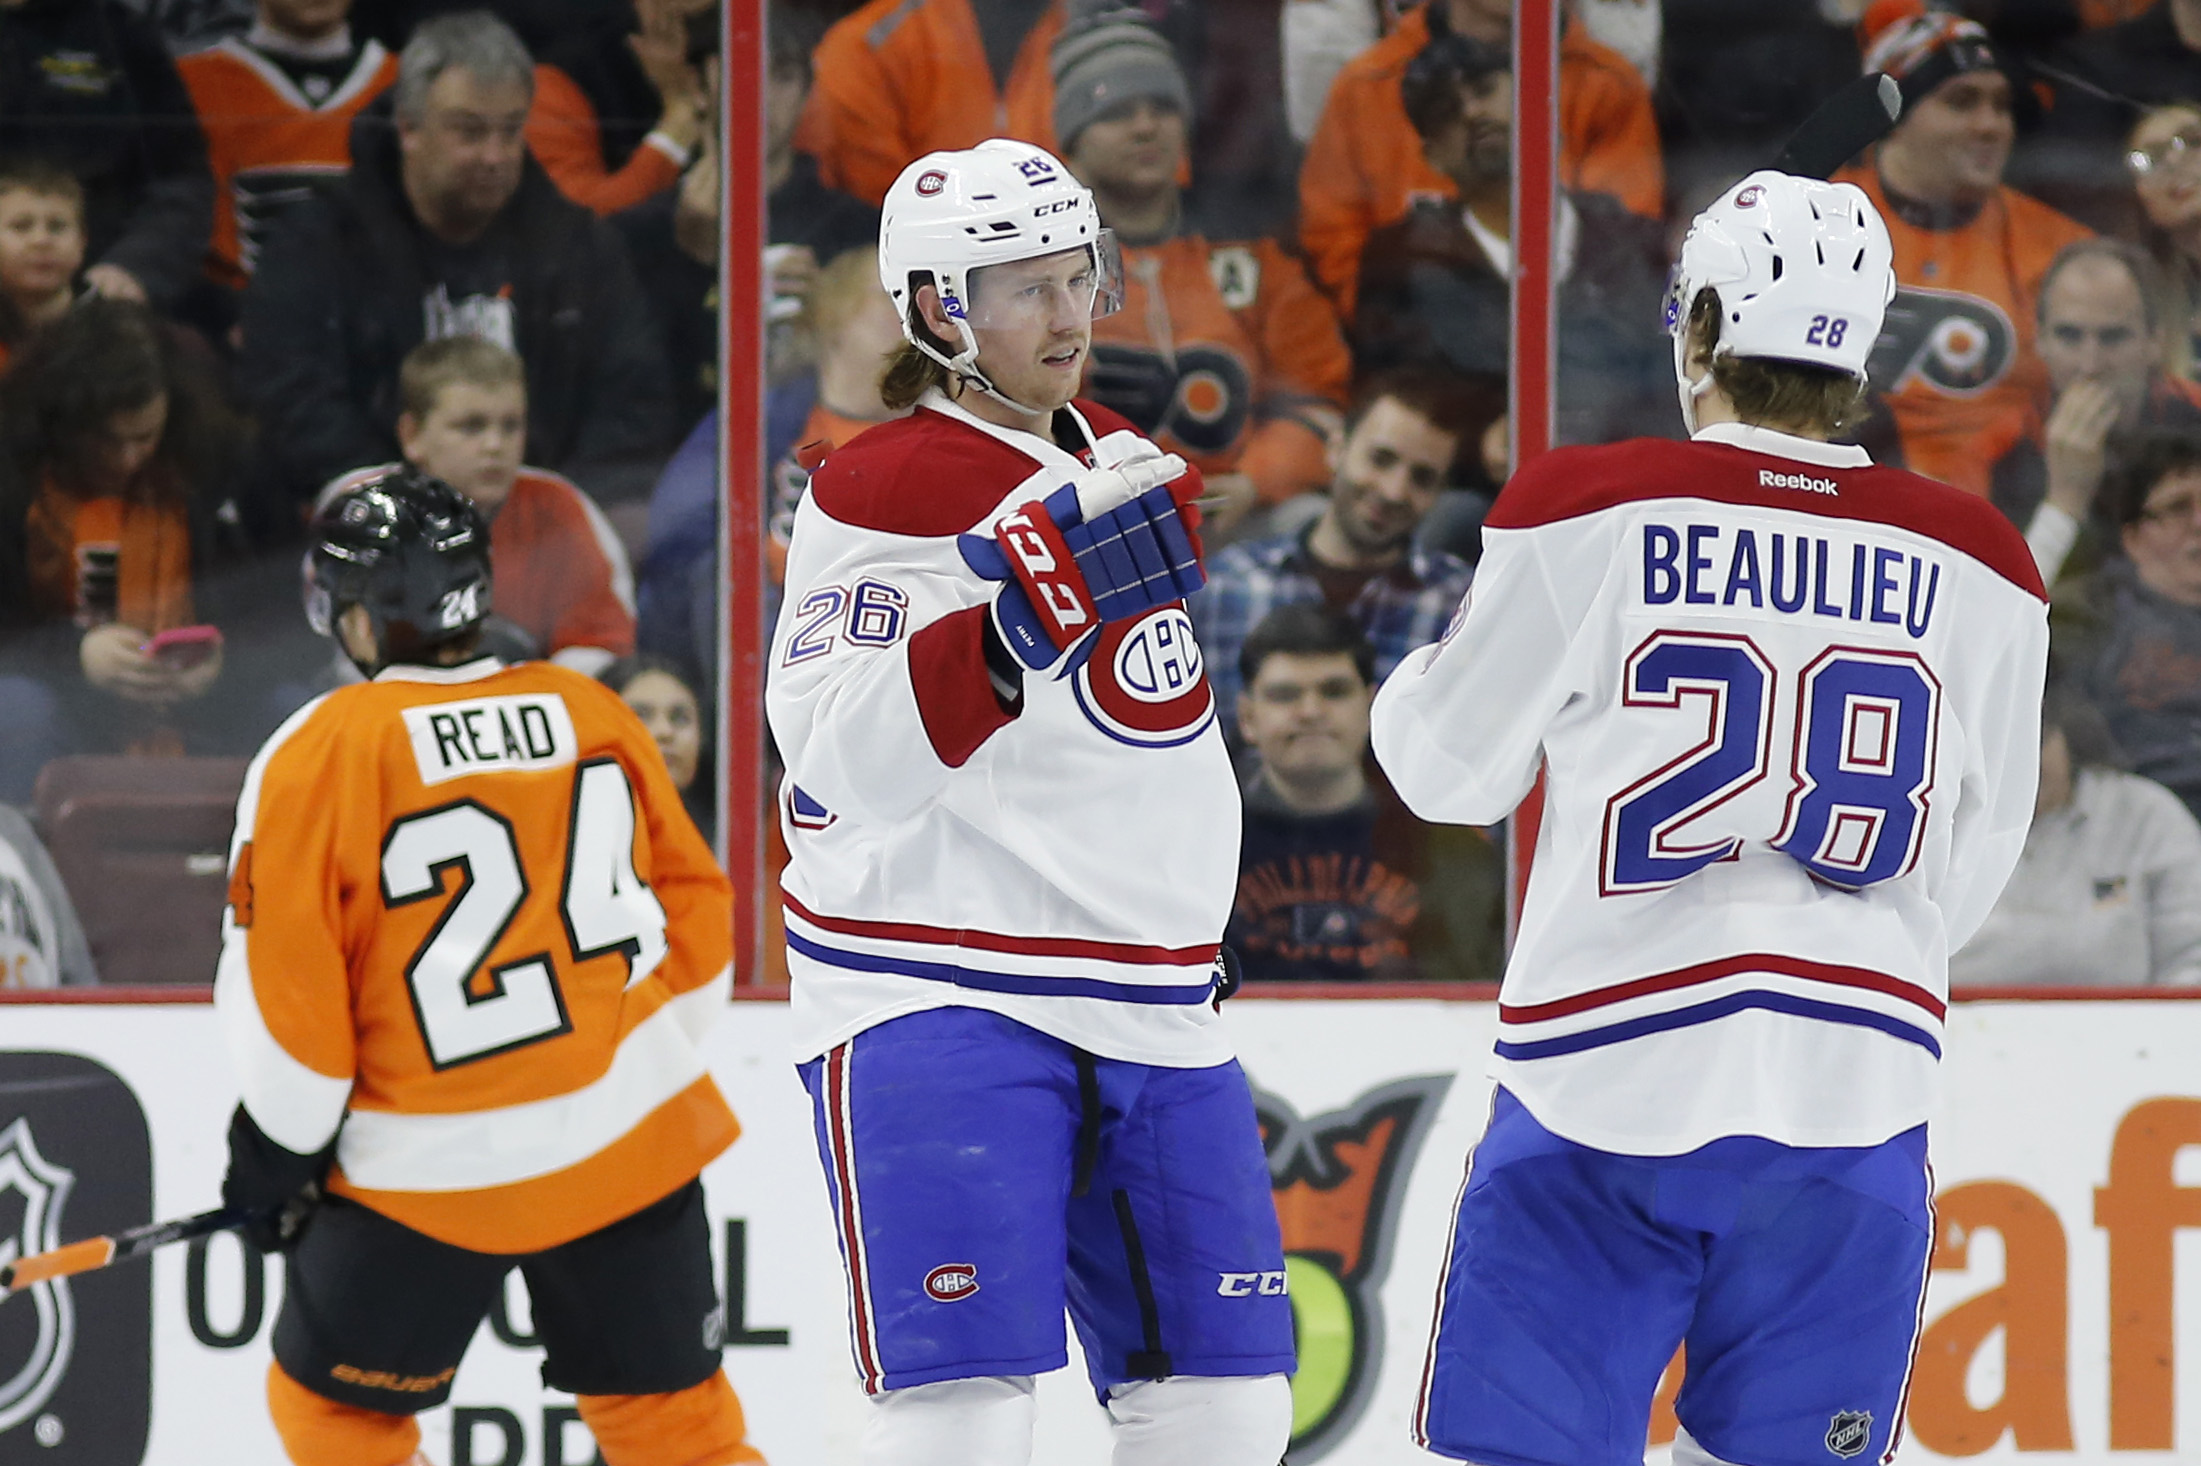 Montreal Canadiens' Jeff Petry (26) and Nathan Beaulieu (28) celebrate after Petry's goal during the second period of an NHL hockey game against the Philadelphia Flyers, Tuesday, Feb. 2, 2016, in Philadelphia. (AP Photo/Matt Slocum)